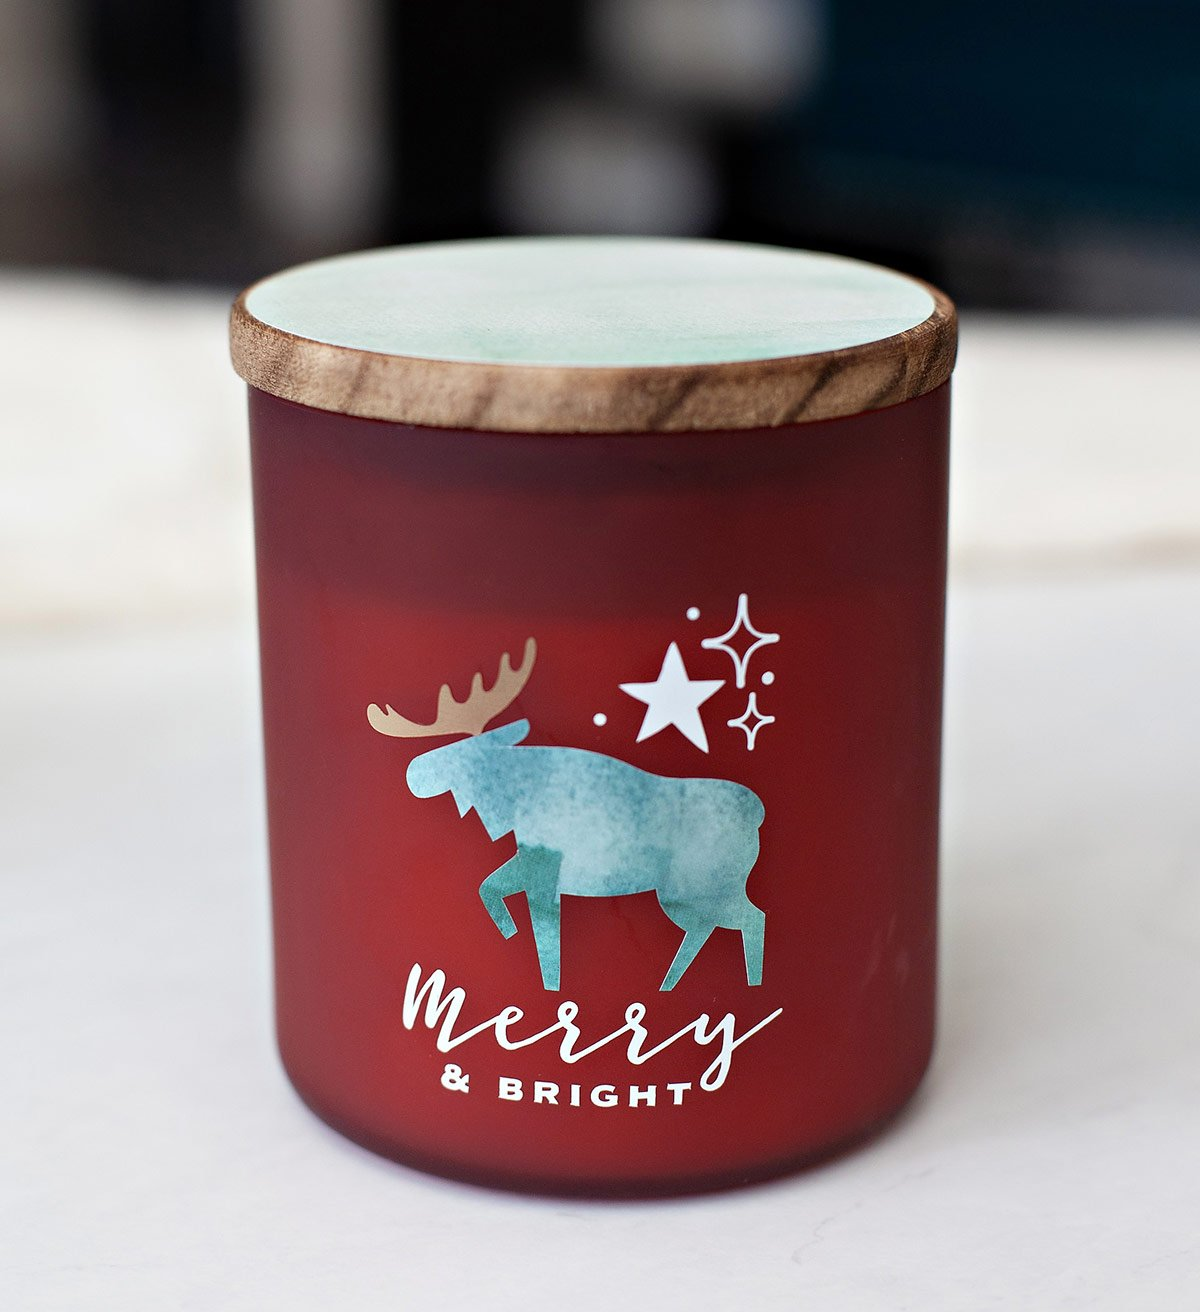 Cricut Holiday Candle - Merry & Bright